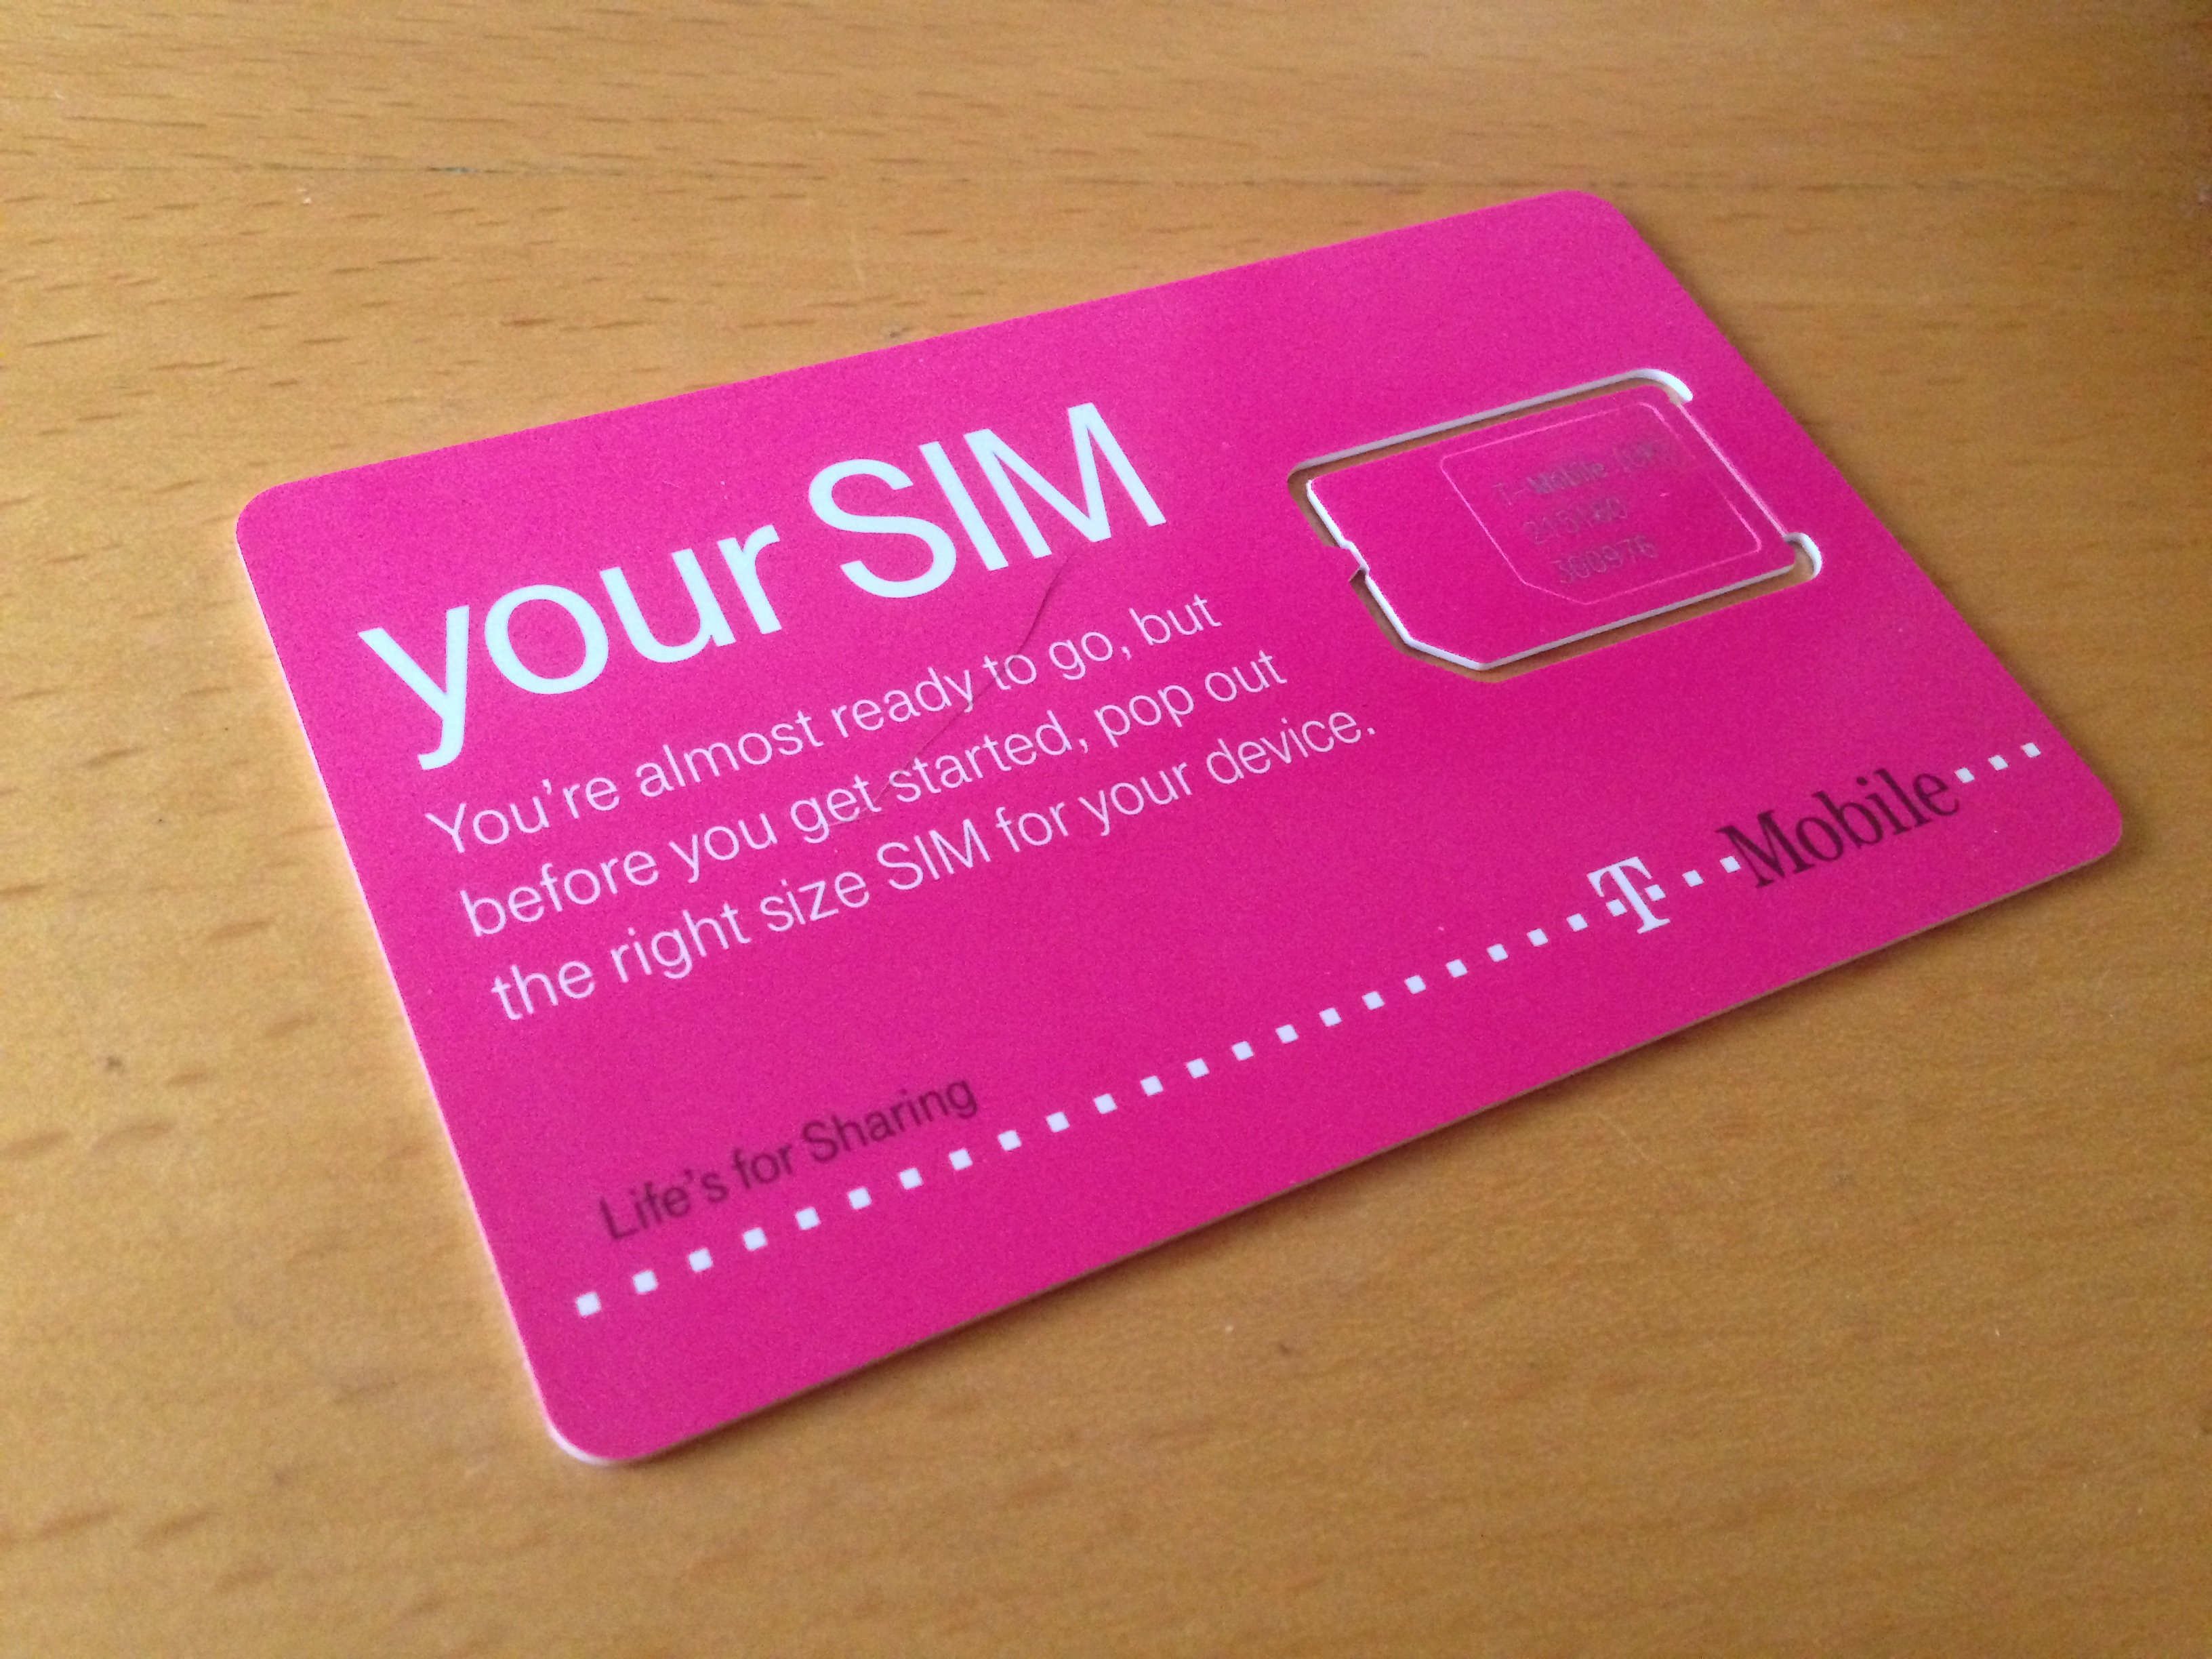 Tmobile Full Month £16